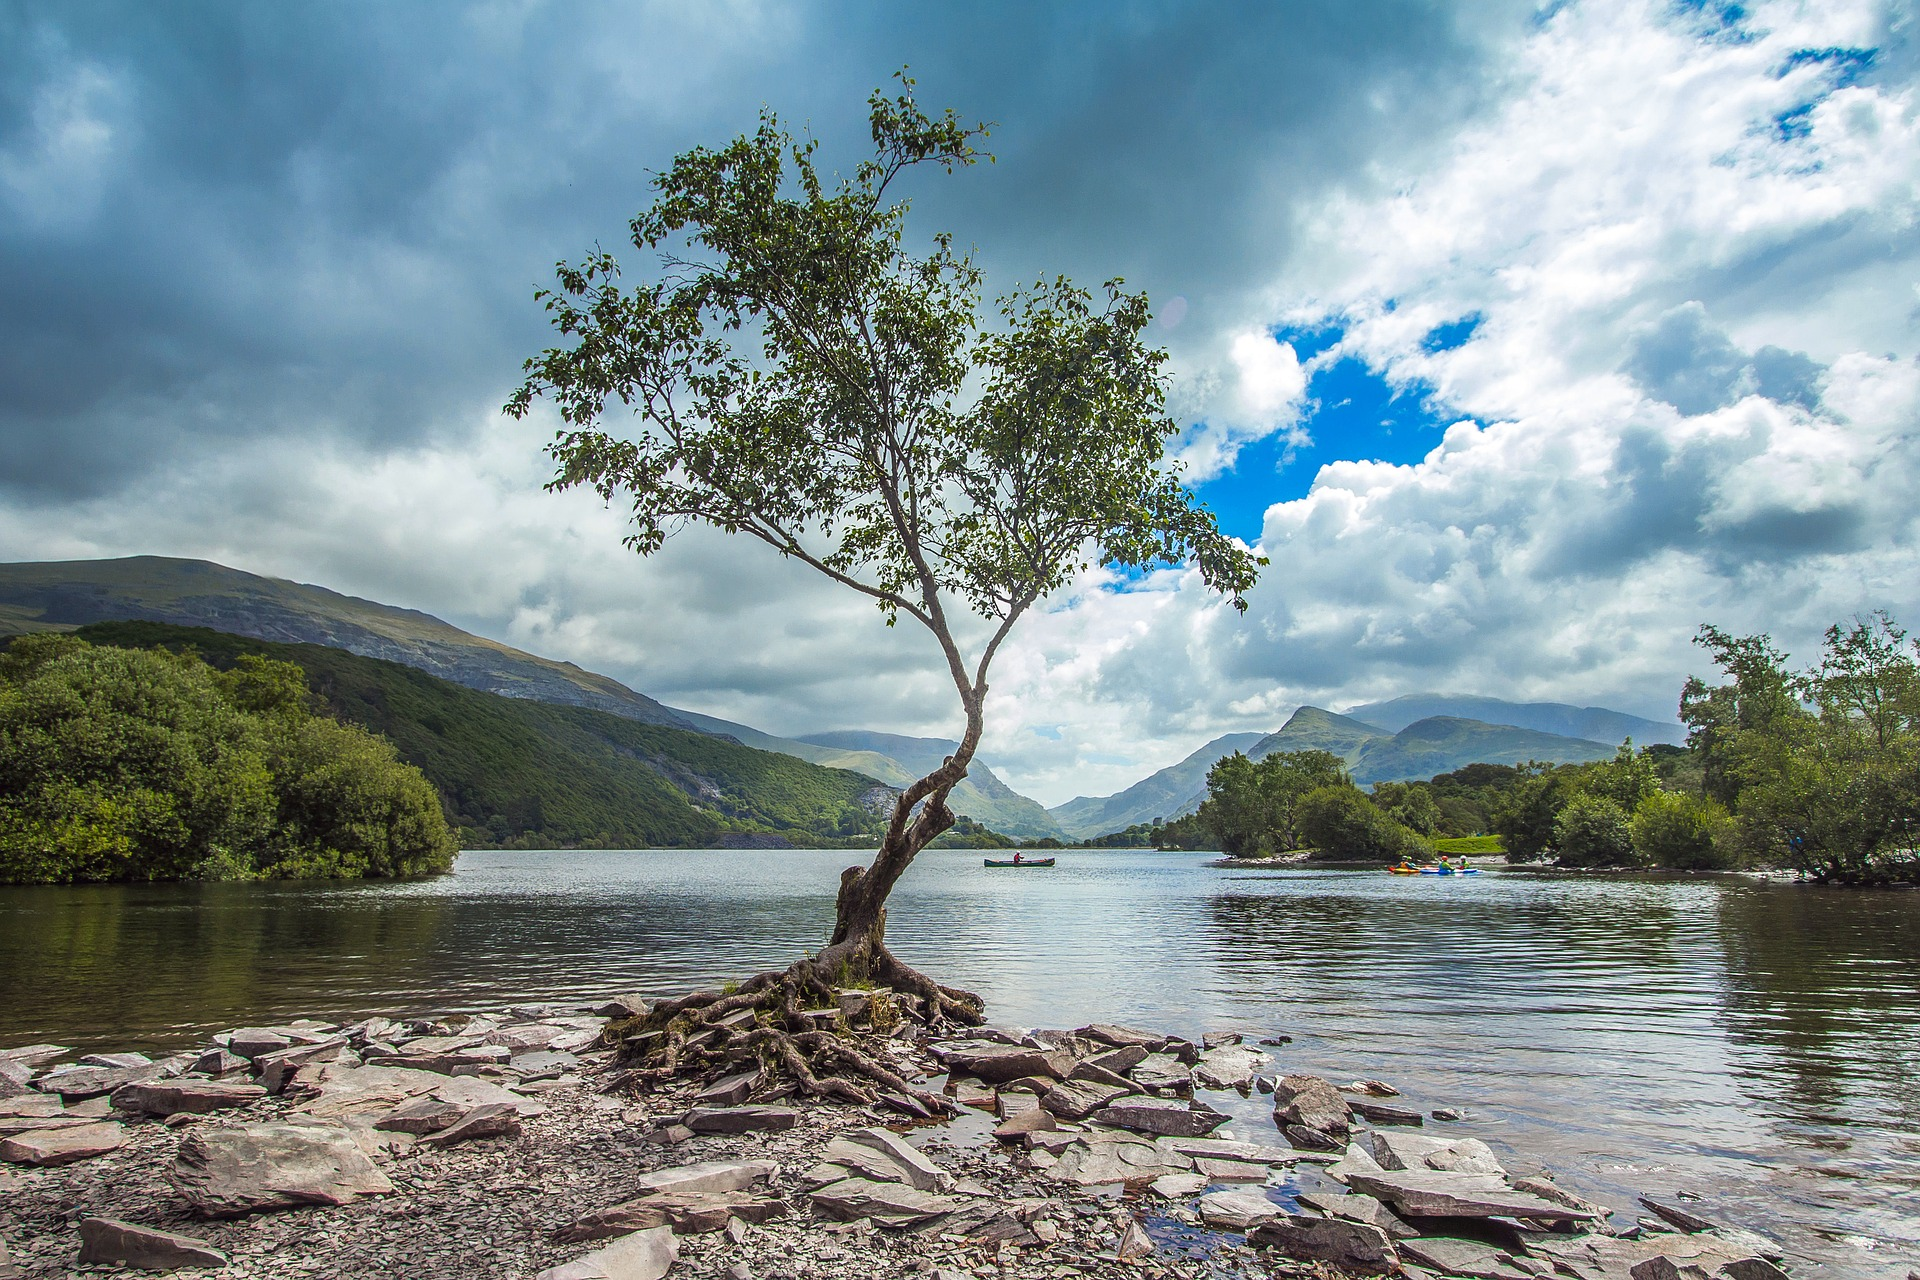 Tree growing by river